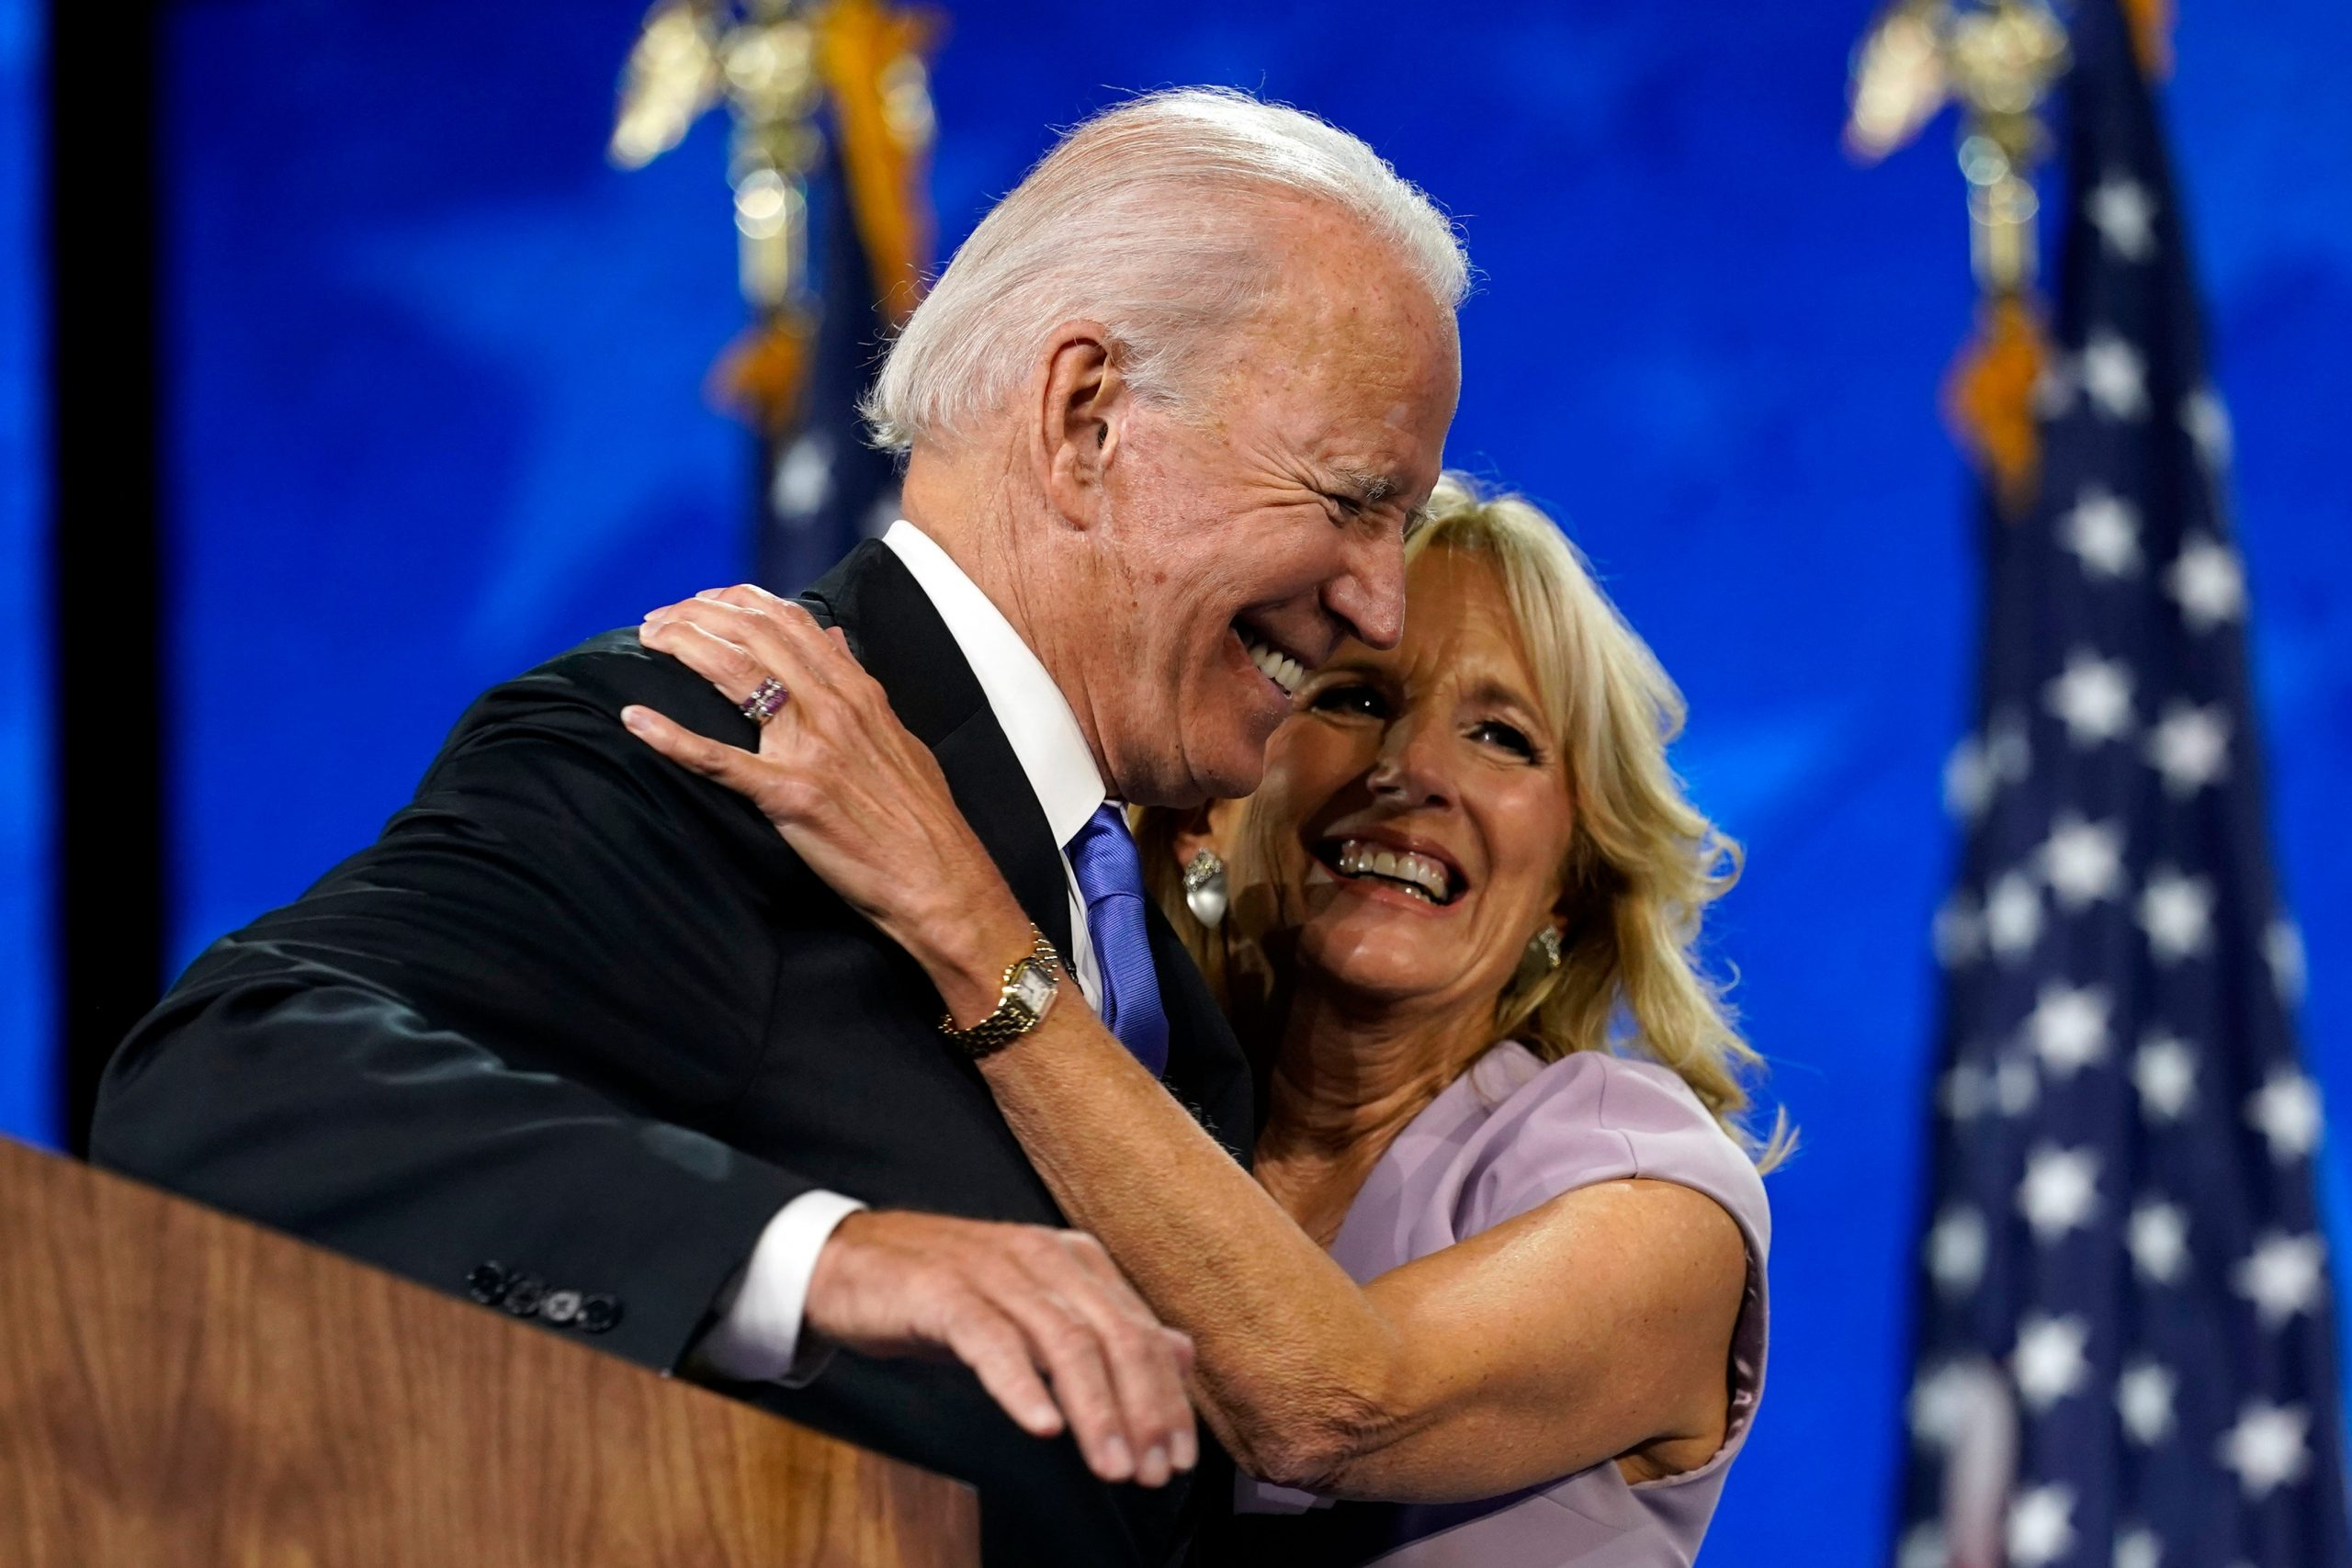 Joe Biden plans to cut taxes, boost health care and reduce college debt during his first term